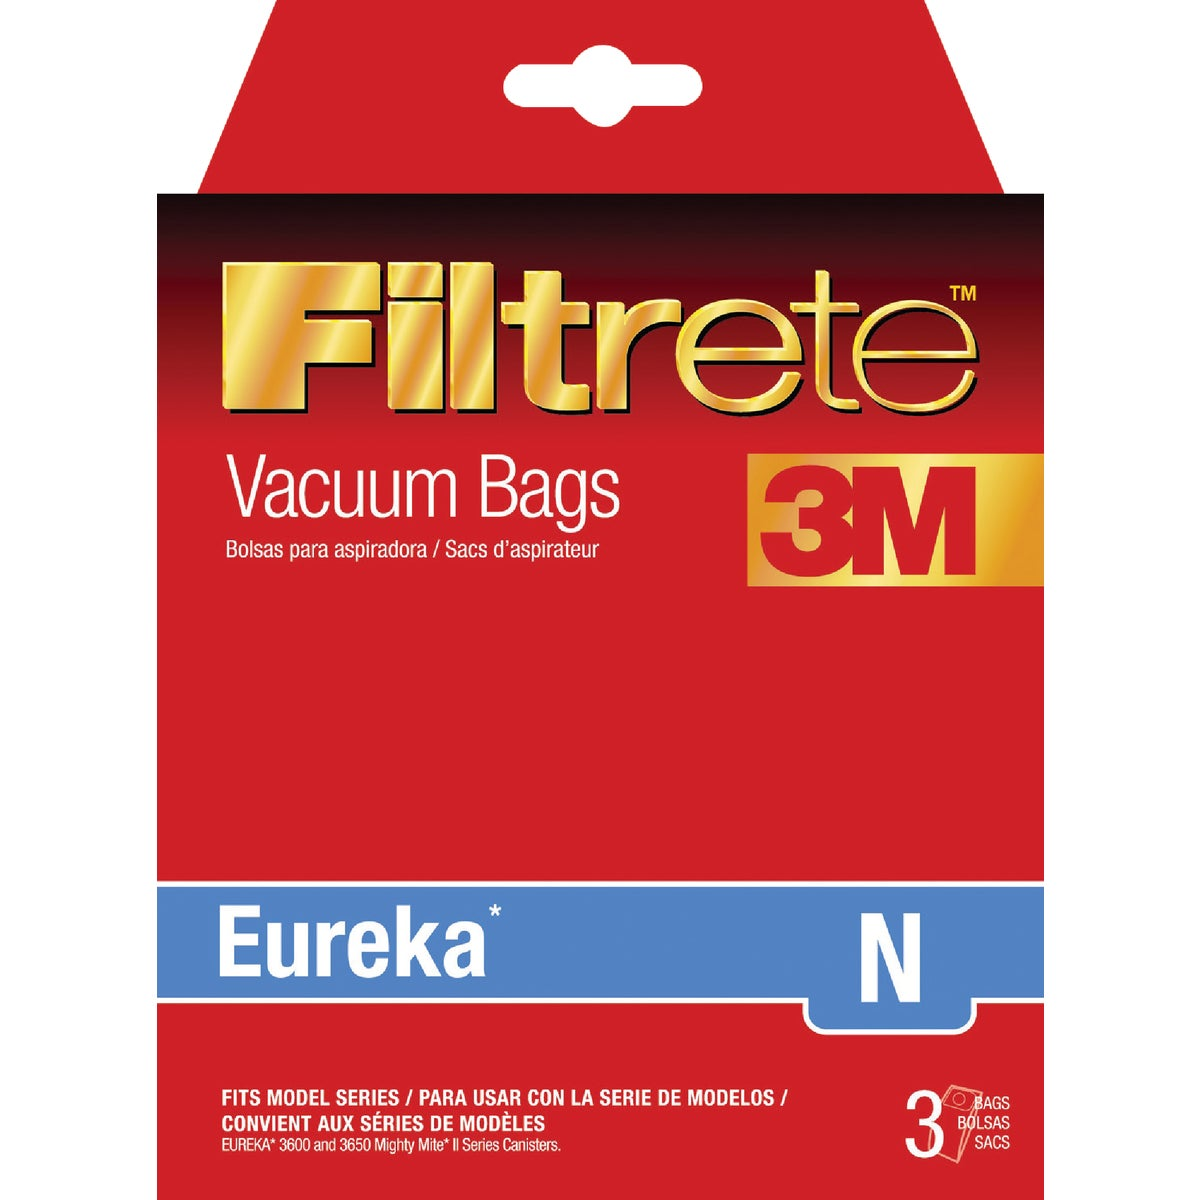 EUREKA N VACUUM BAG - 67714-6 by Electrolux Home Care